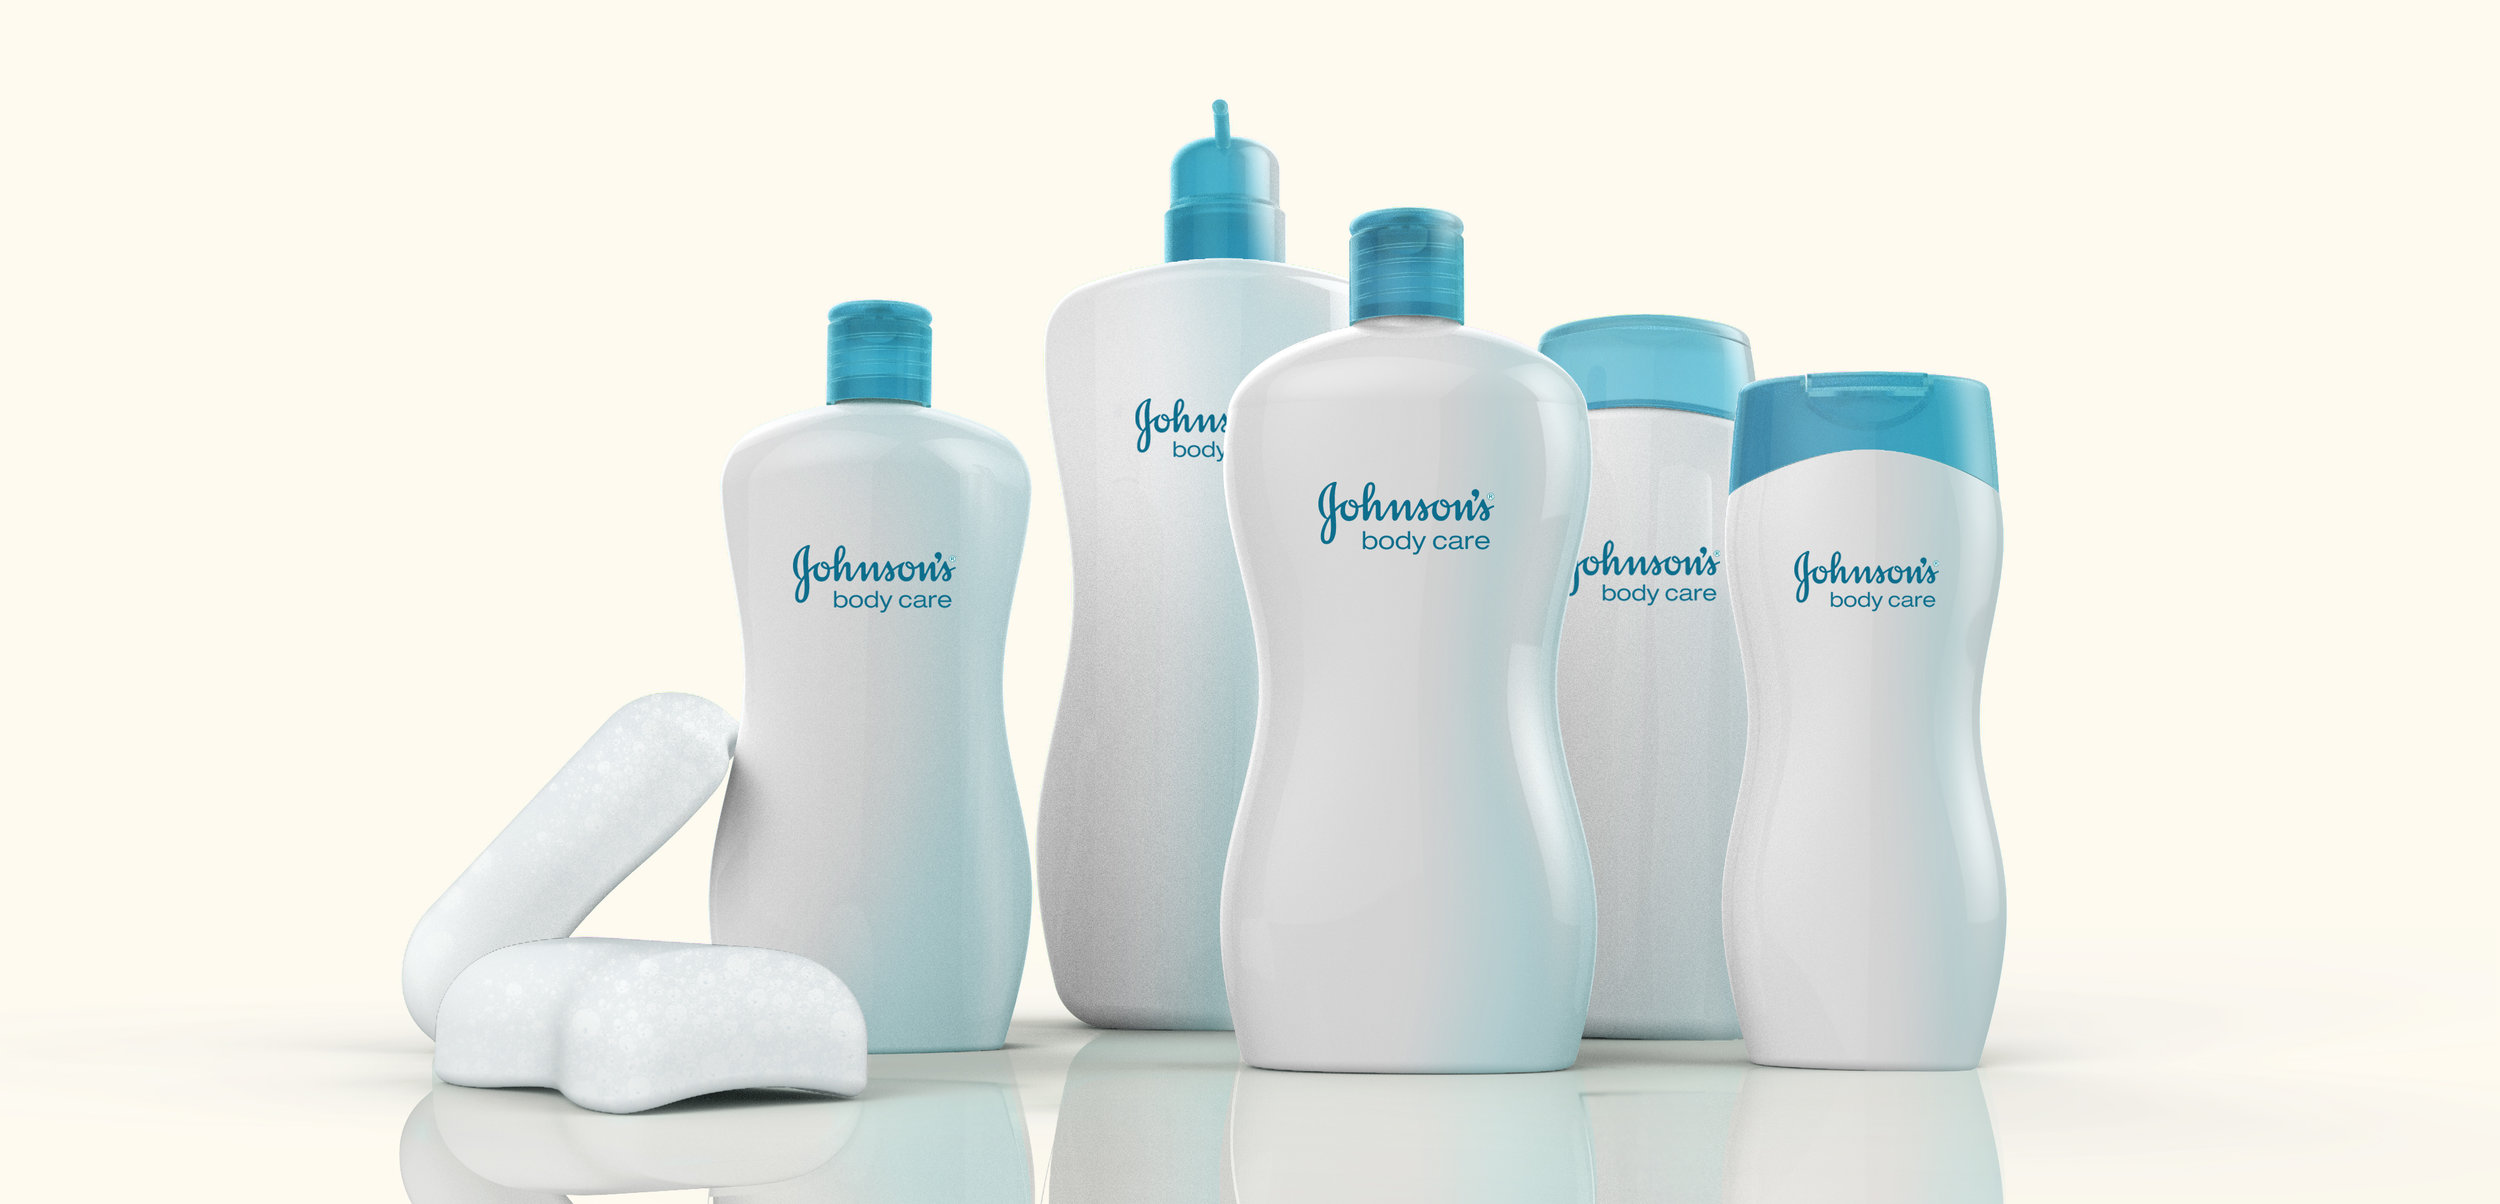 Johnson & Johnson bottles websight_021519.jpg